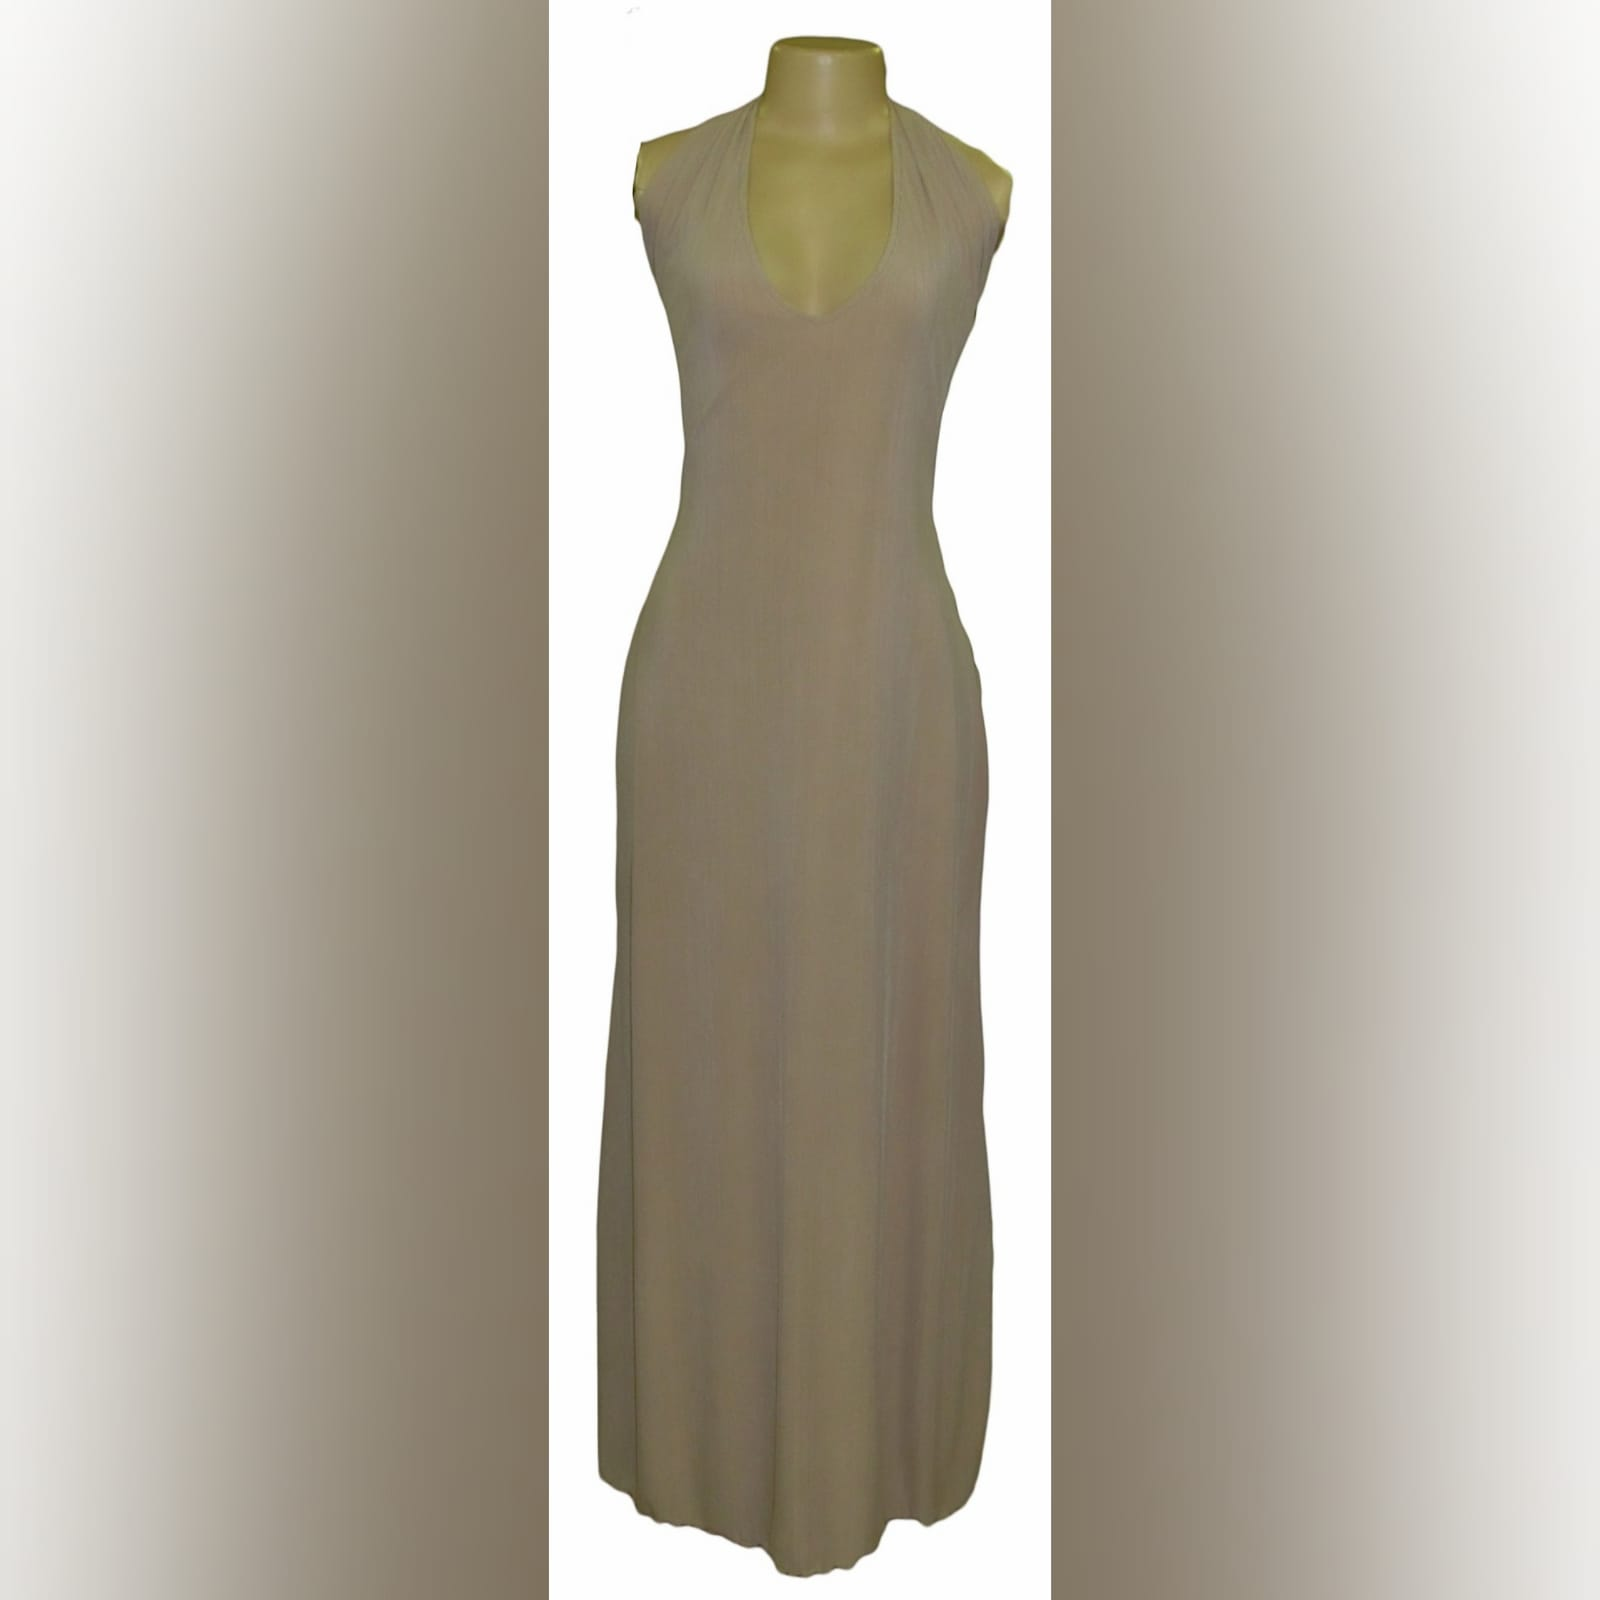 Long halter neck beige smart casual dress 4 long halter neck beige smart casual dress with a tie up open back and a back slit